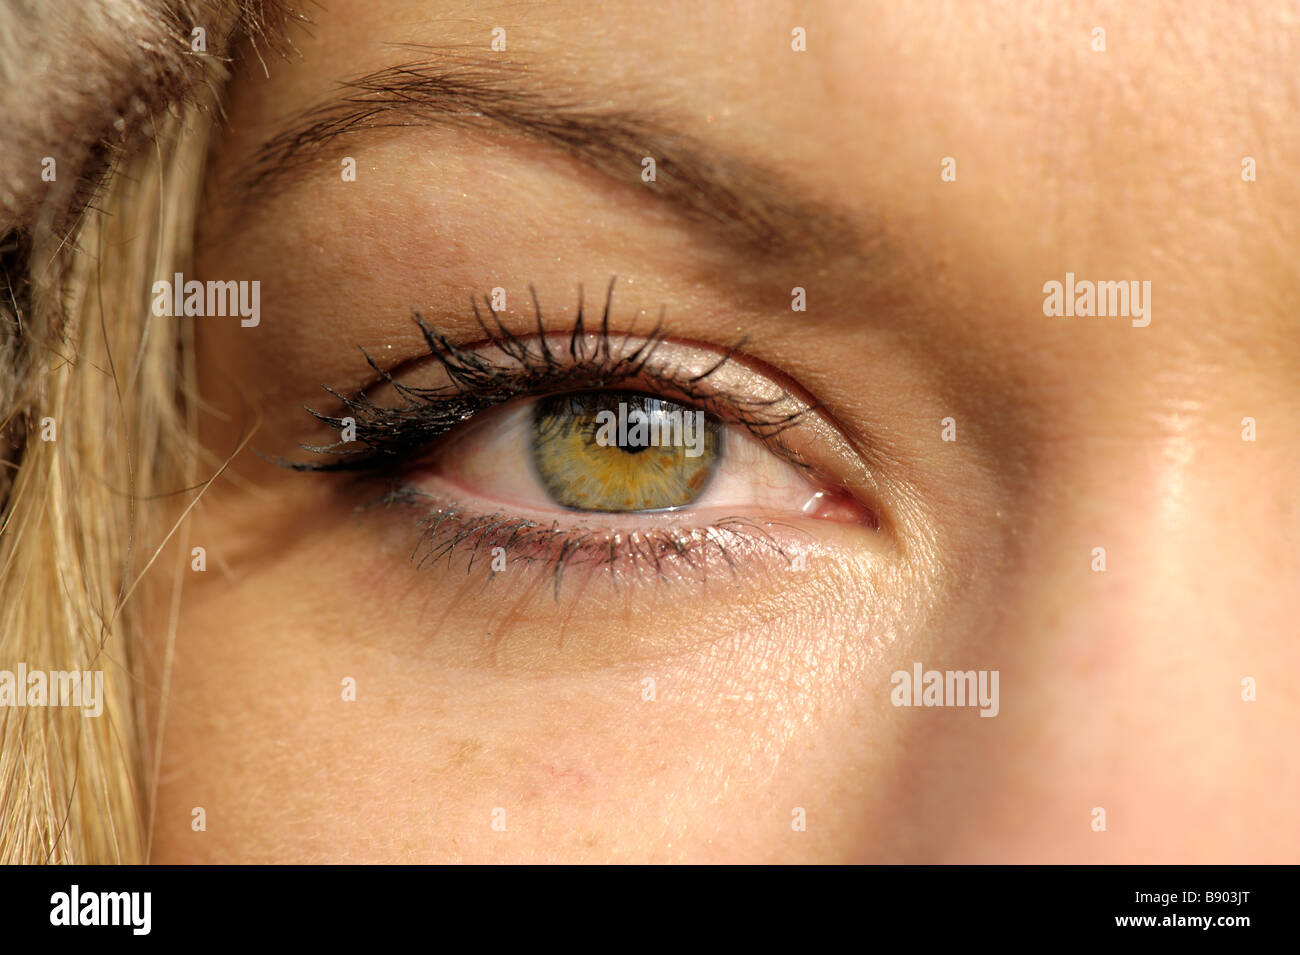 Eyes of a beautiful woman - Stock Image